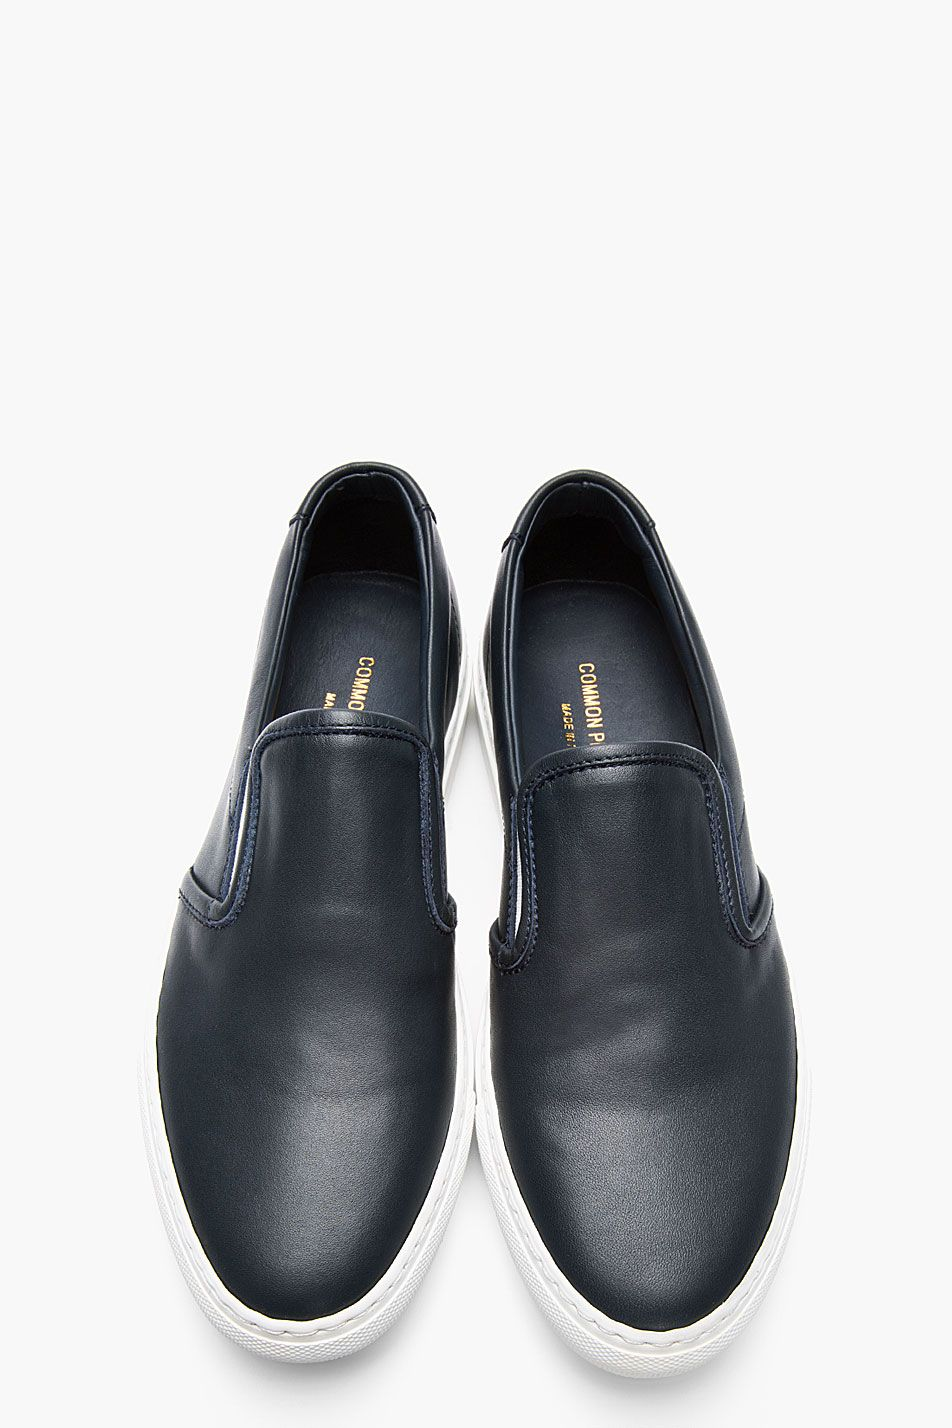 1f9a1ee46 COMMON PROJECTS SSENSE Exclusive Navy Leather Slip-Ons | Classy ...